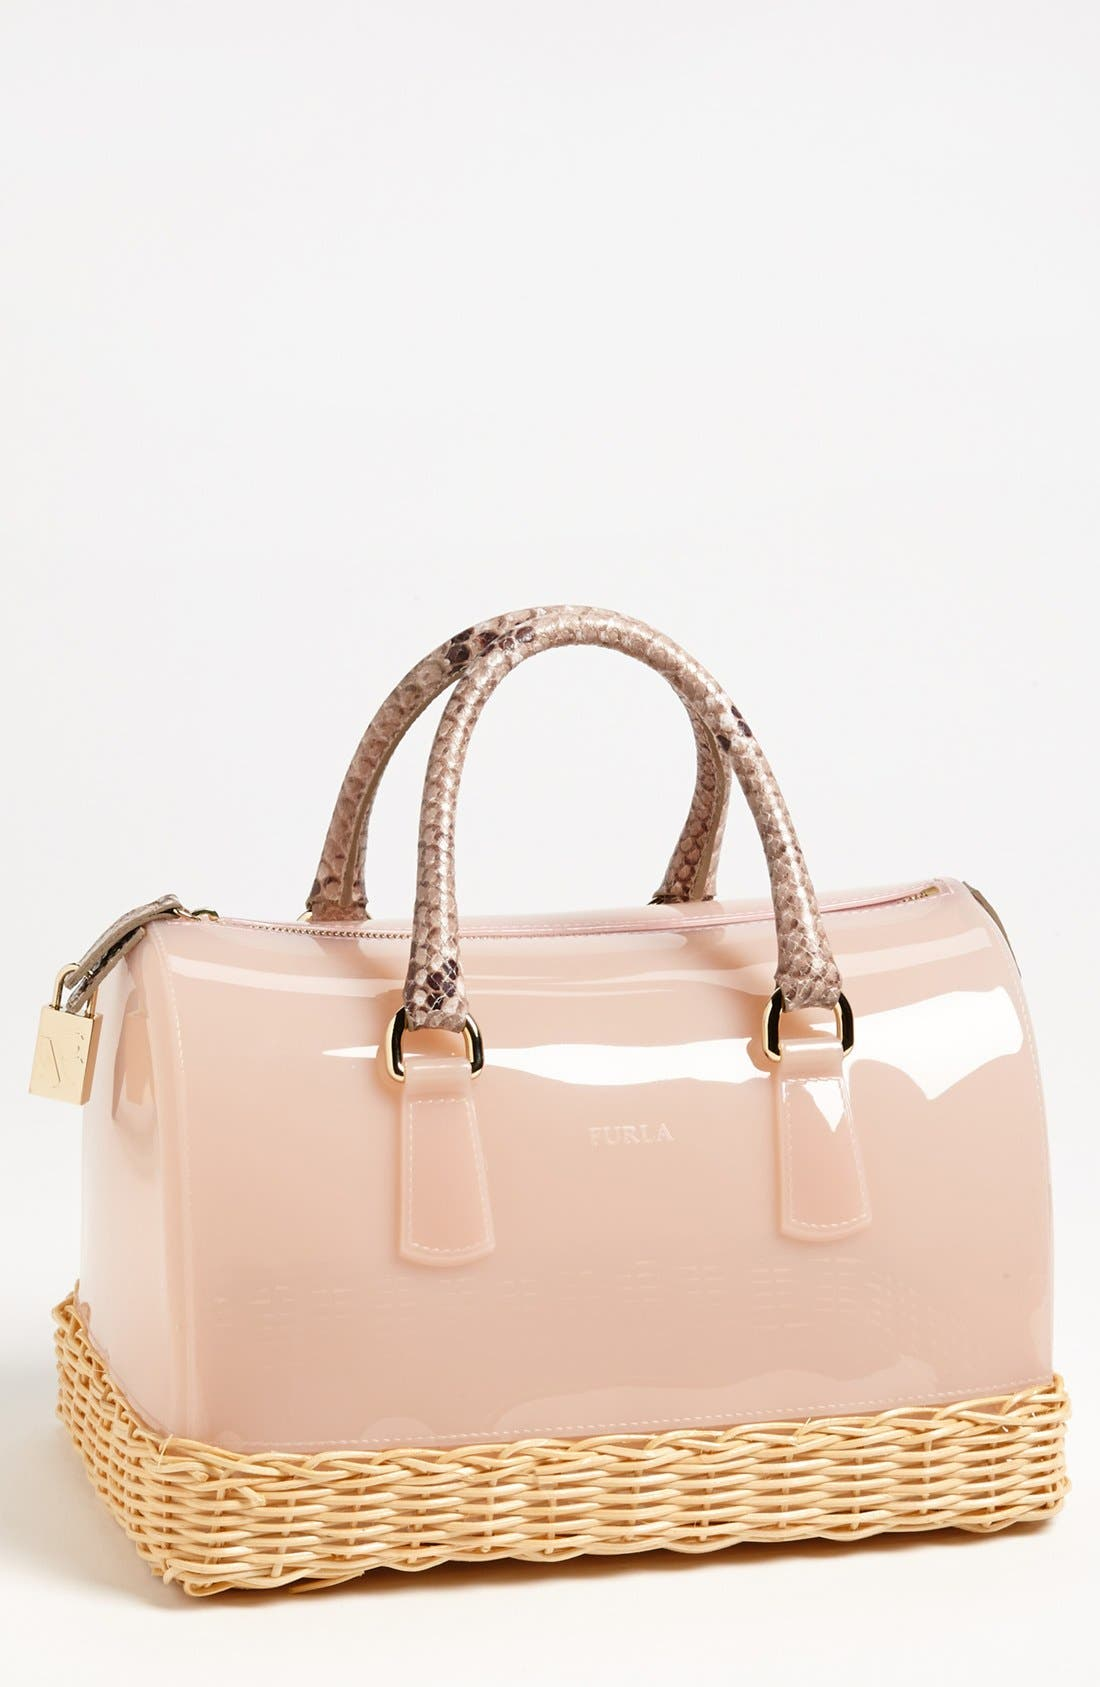 Alternate Image 1 Selected - Furla 'Candy' Rubber Satchel